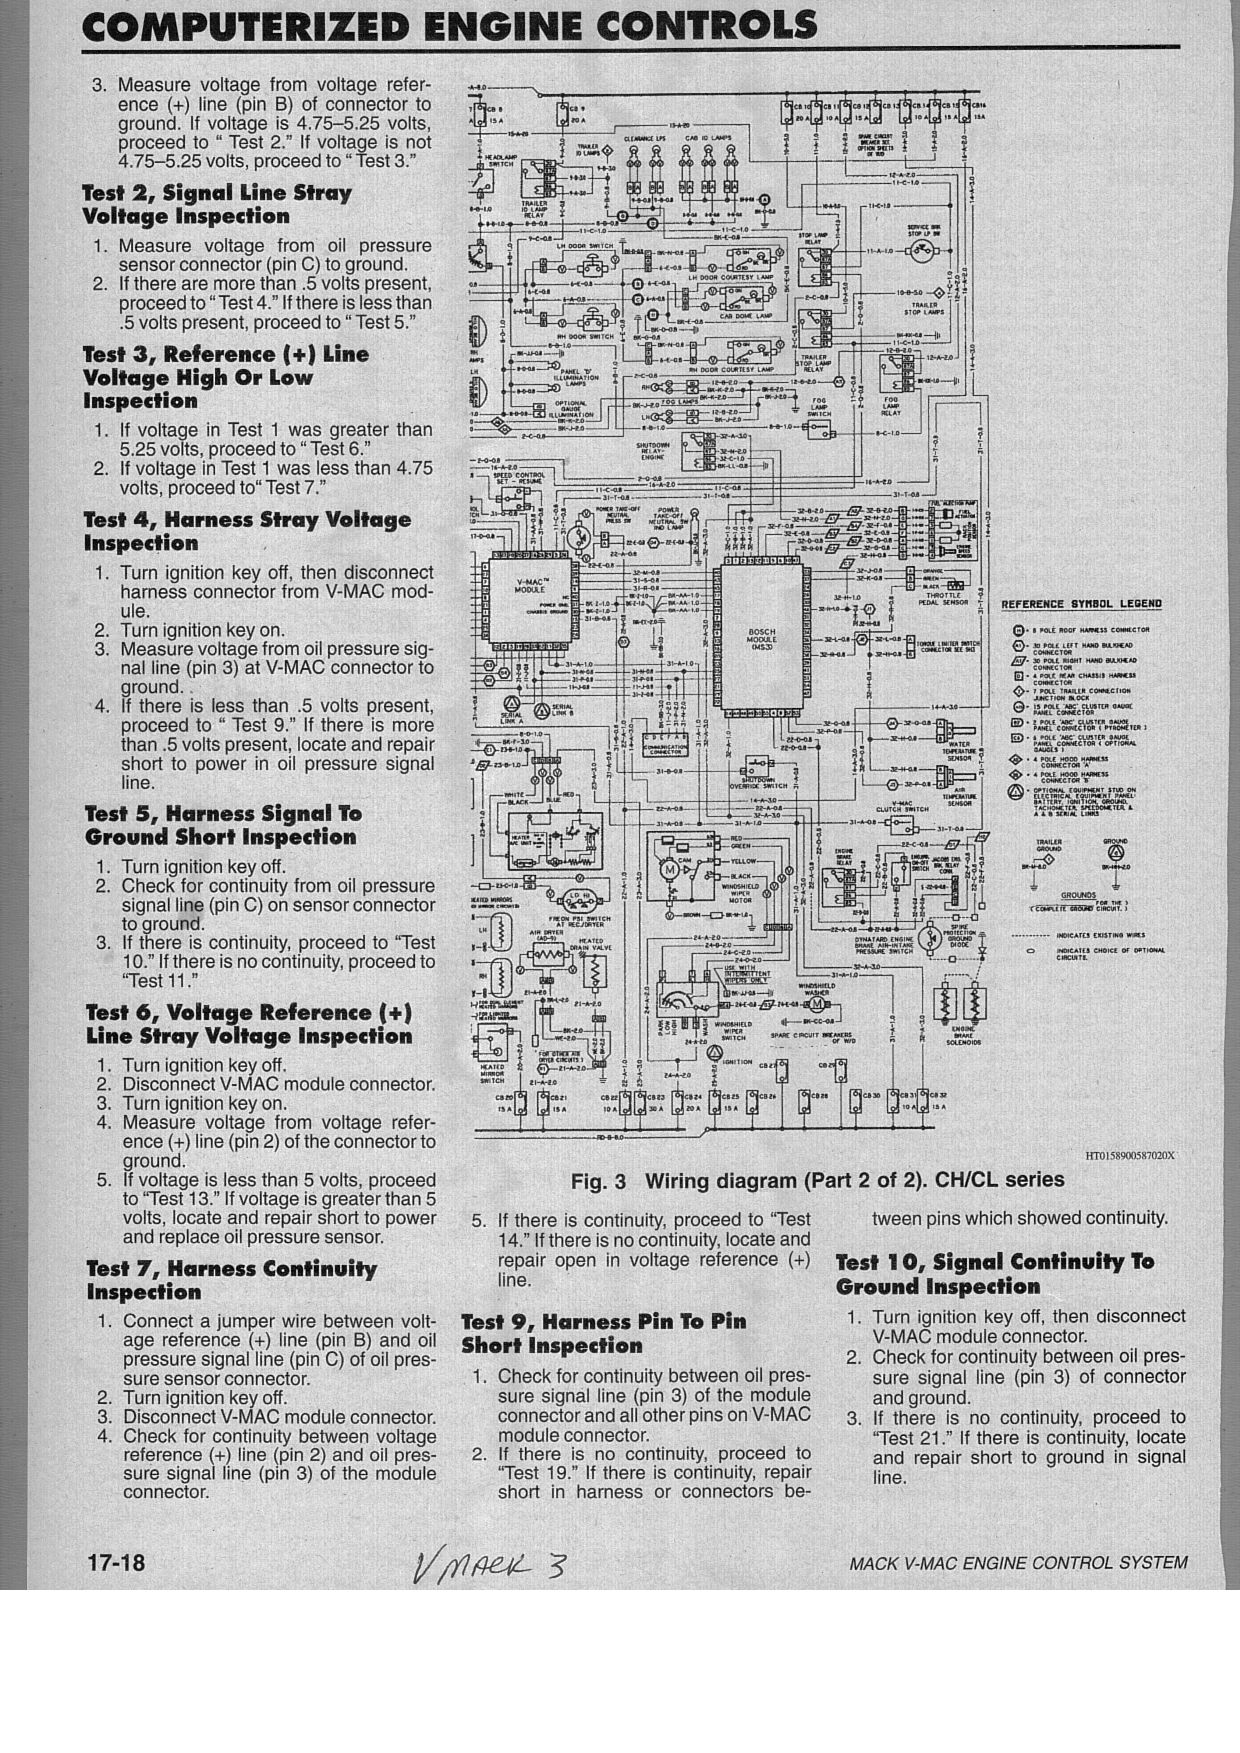 2009 Mack Wiring Diagram Another Blog About Fuse Box Schematic What Would Cause The Clutch Fan To Blow Continuously On A